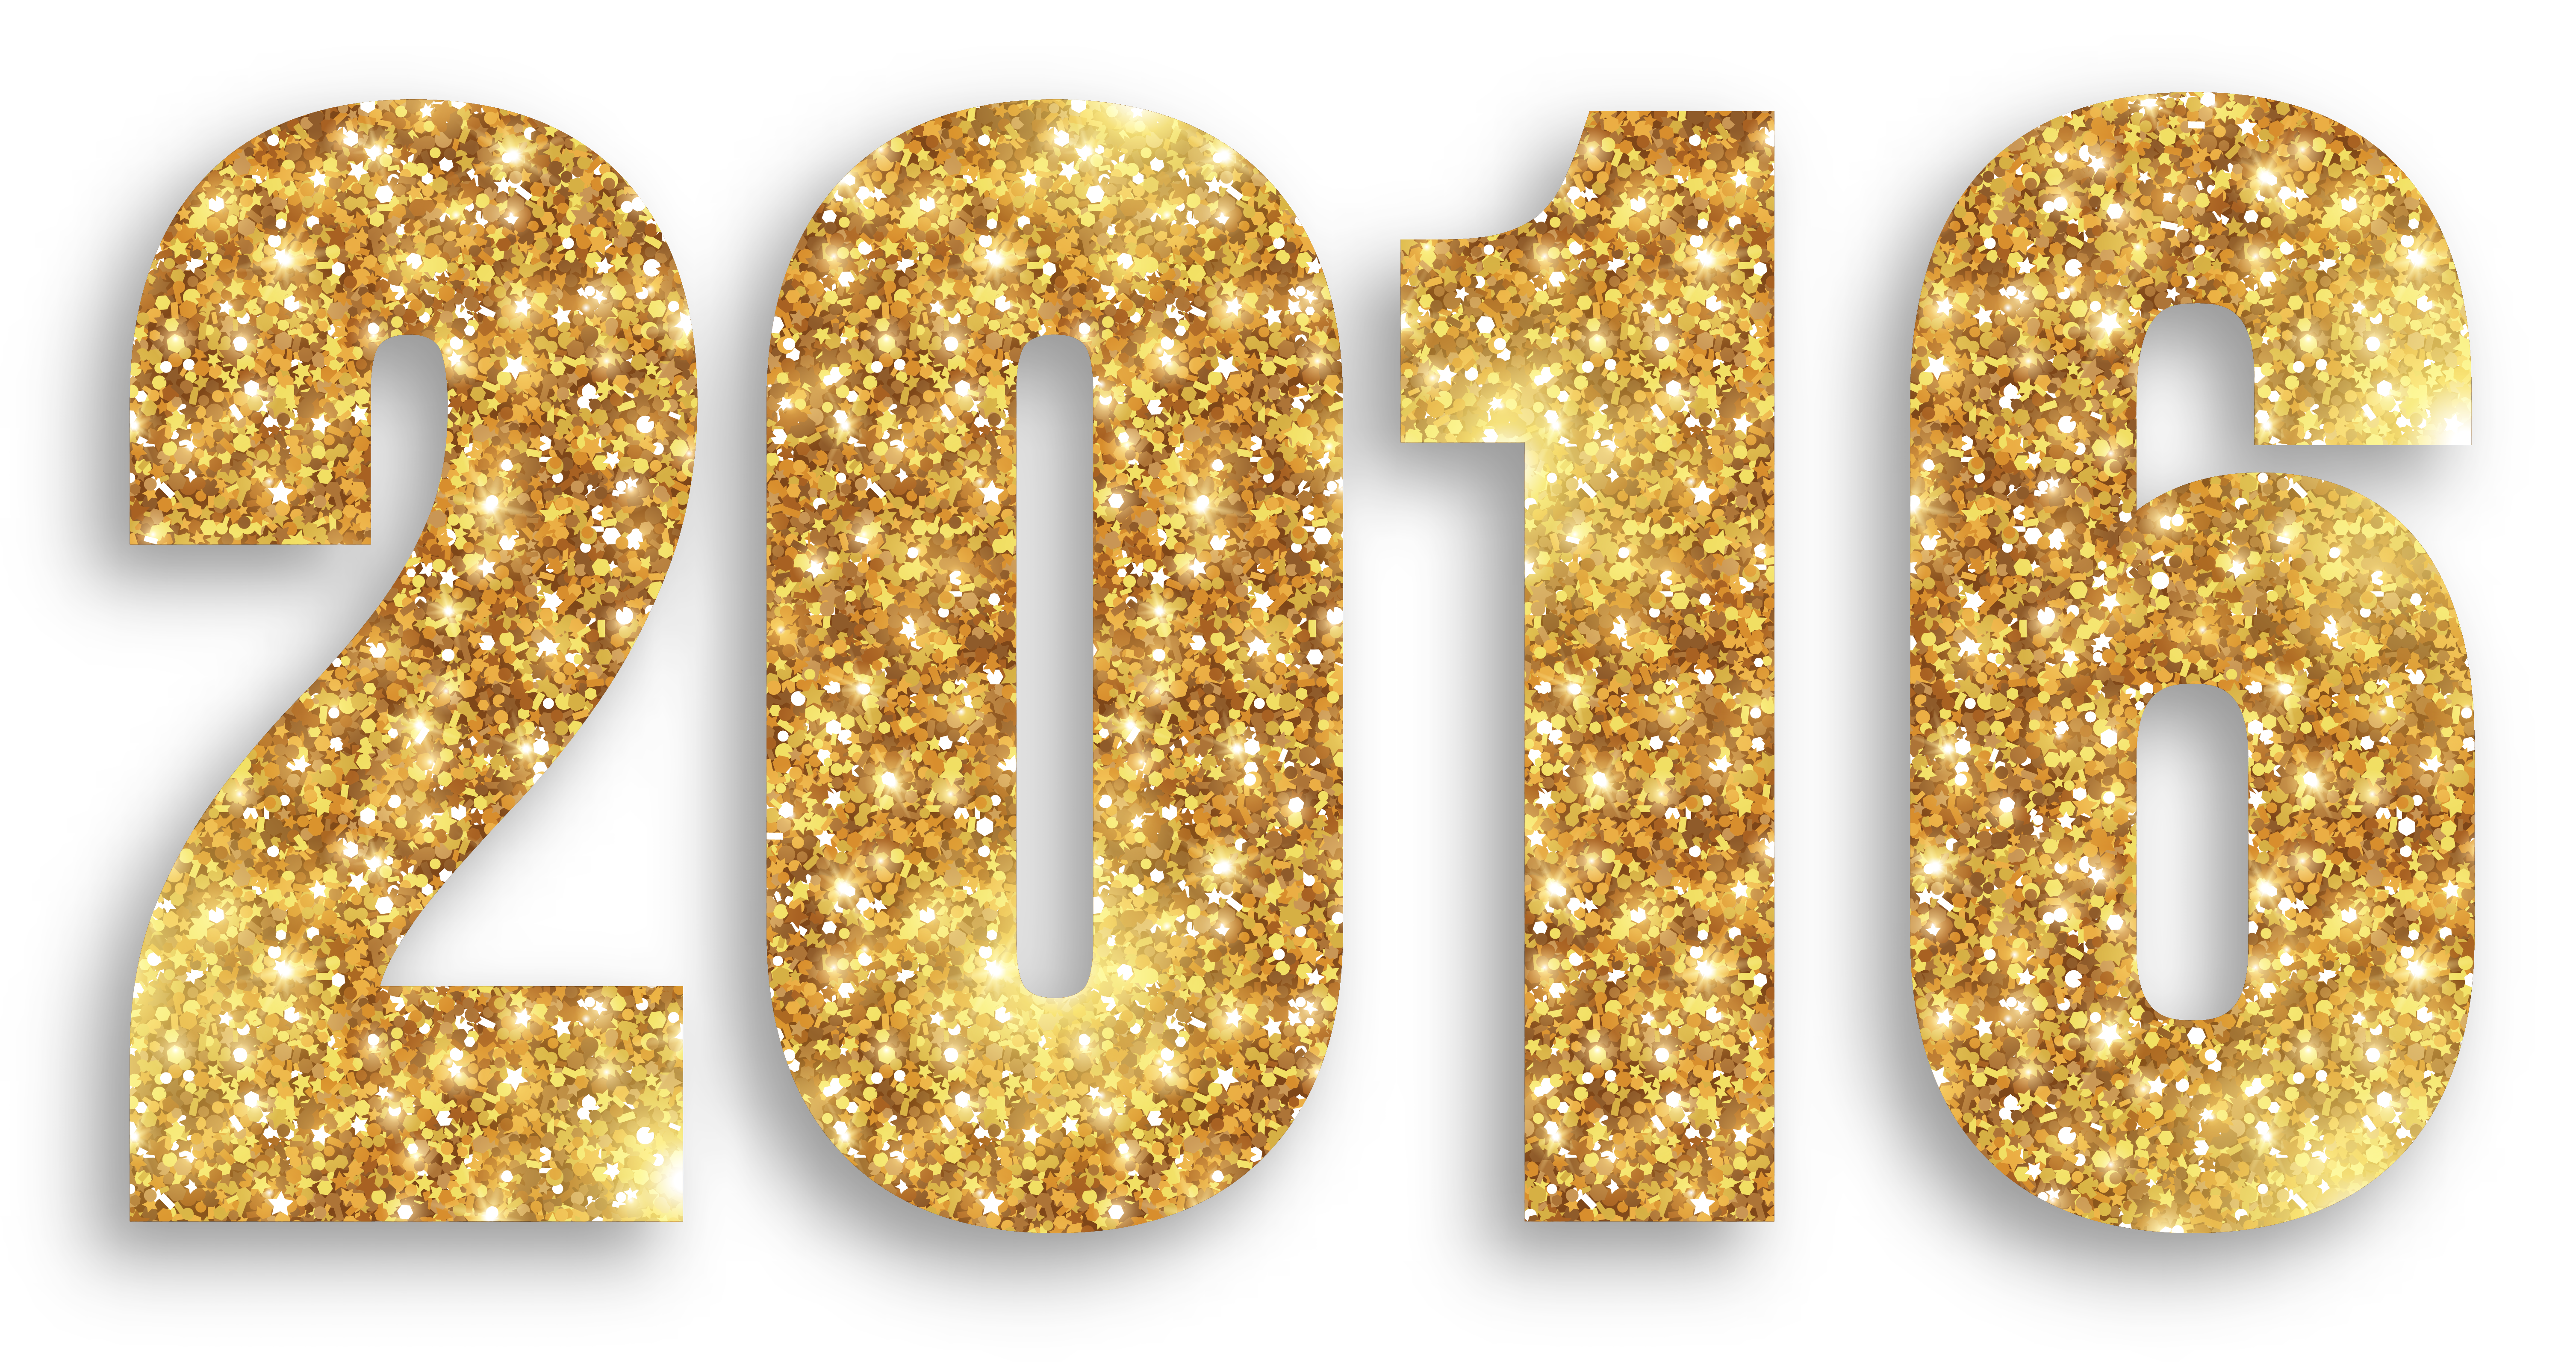 2016 Gold Large PNG Image.